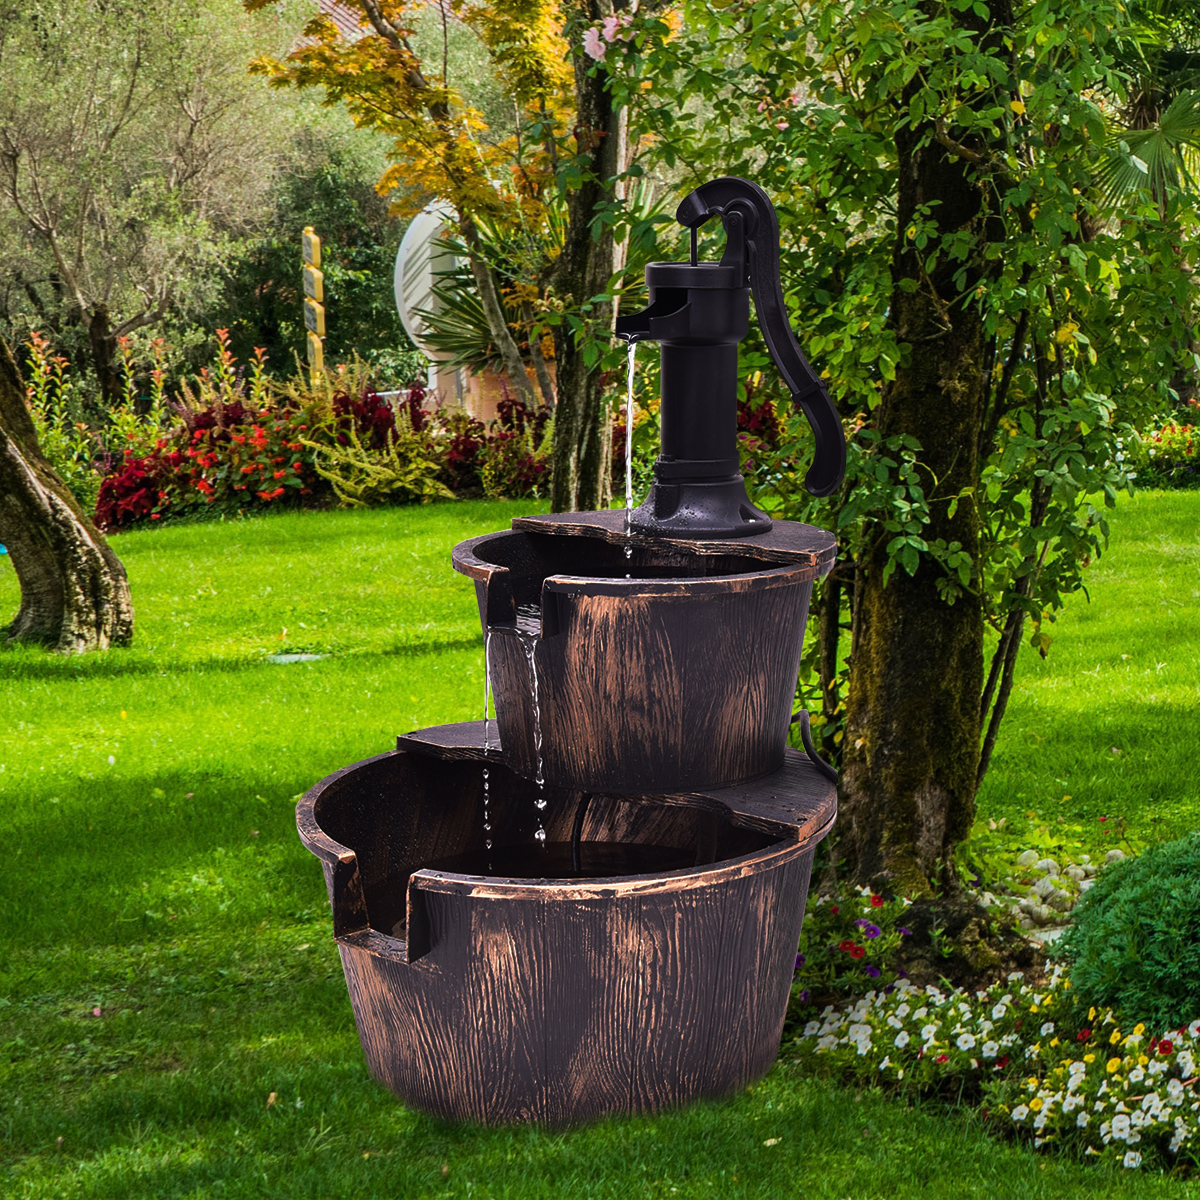 Gymax 2 Tier Barrel Waterfall Fountain Barrel Water Fountain Pump Outdoor Garden by Gymax